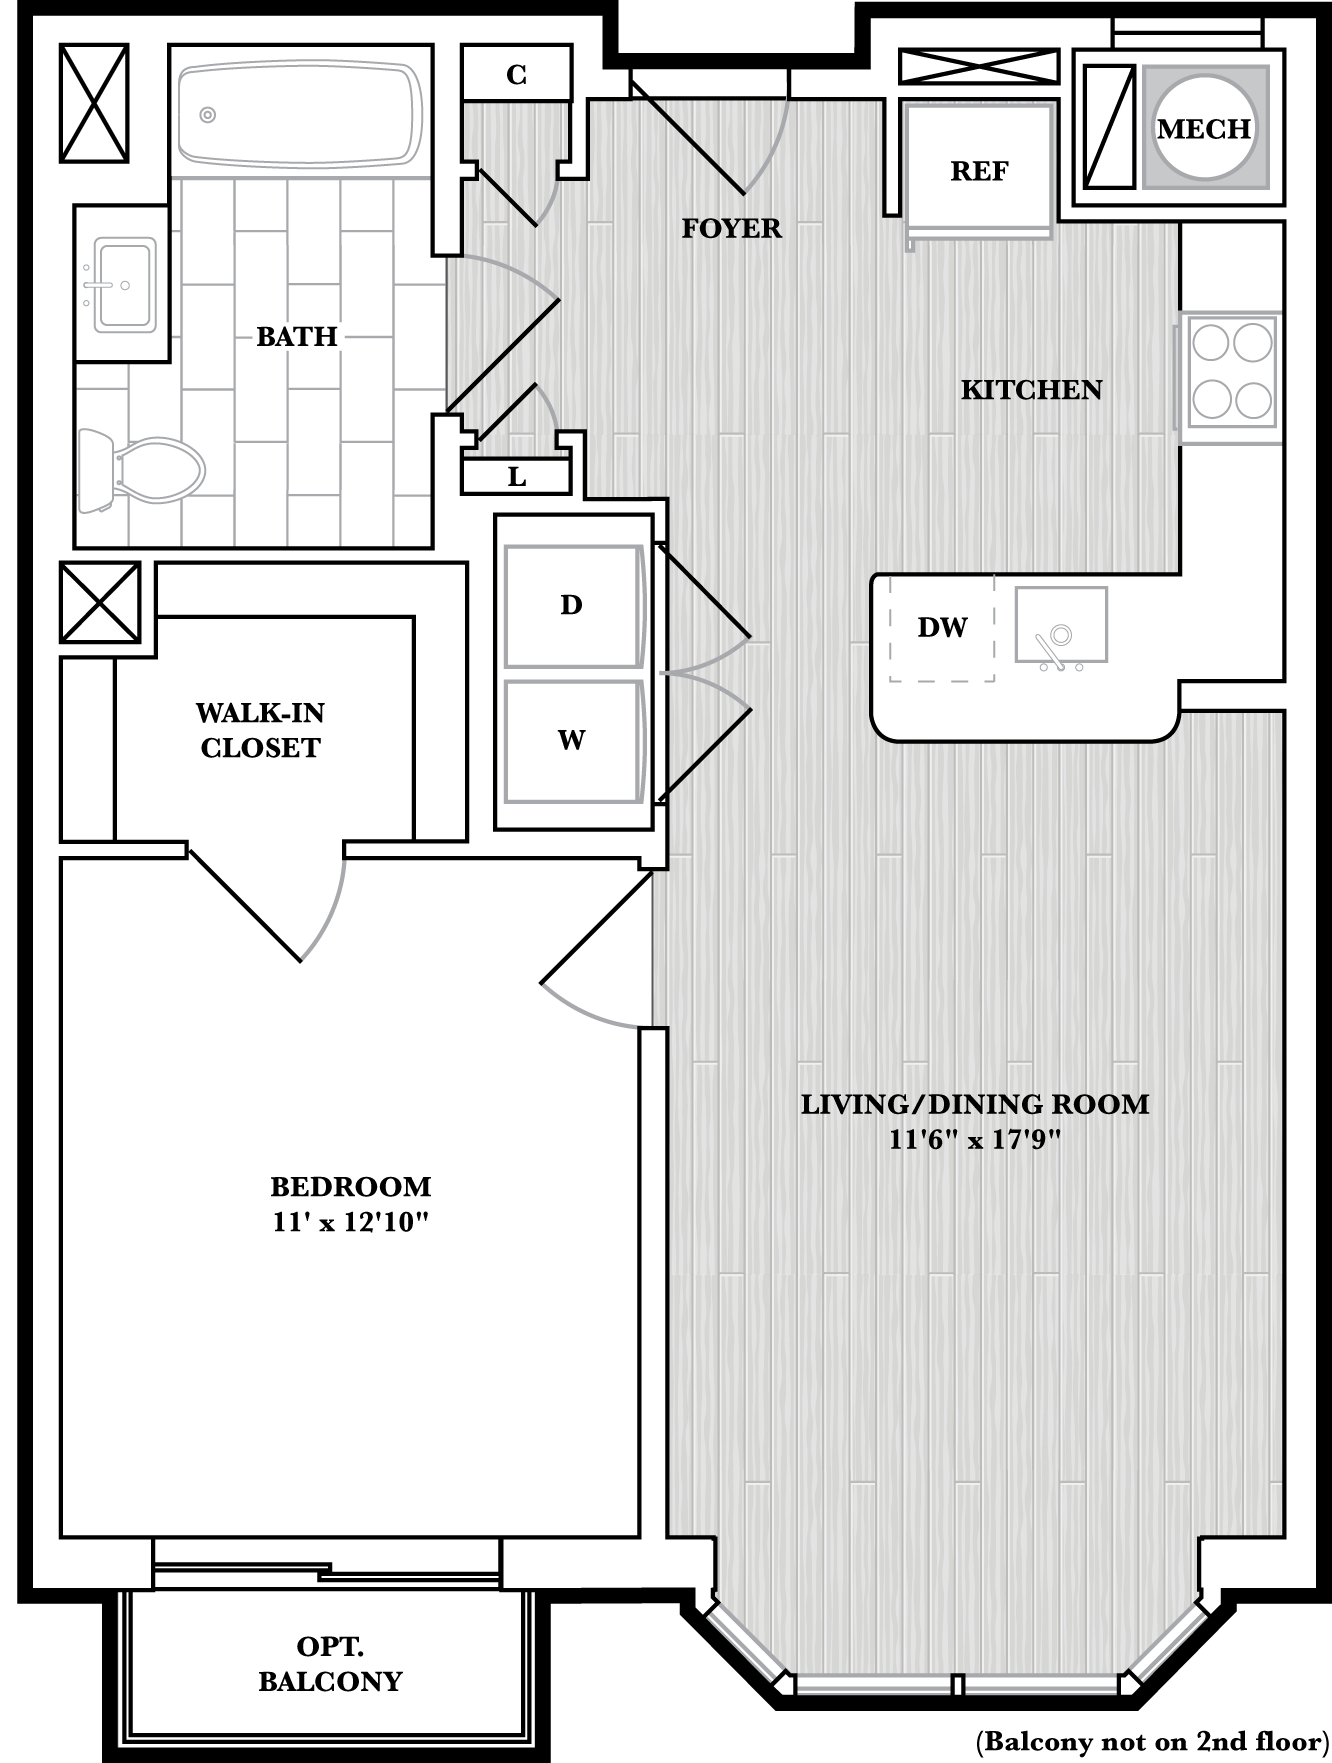 floorplan image of N304